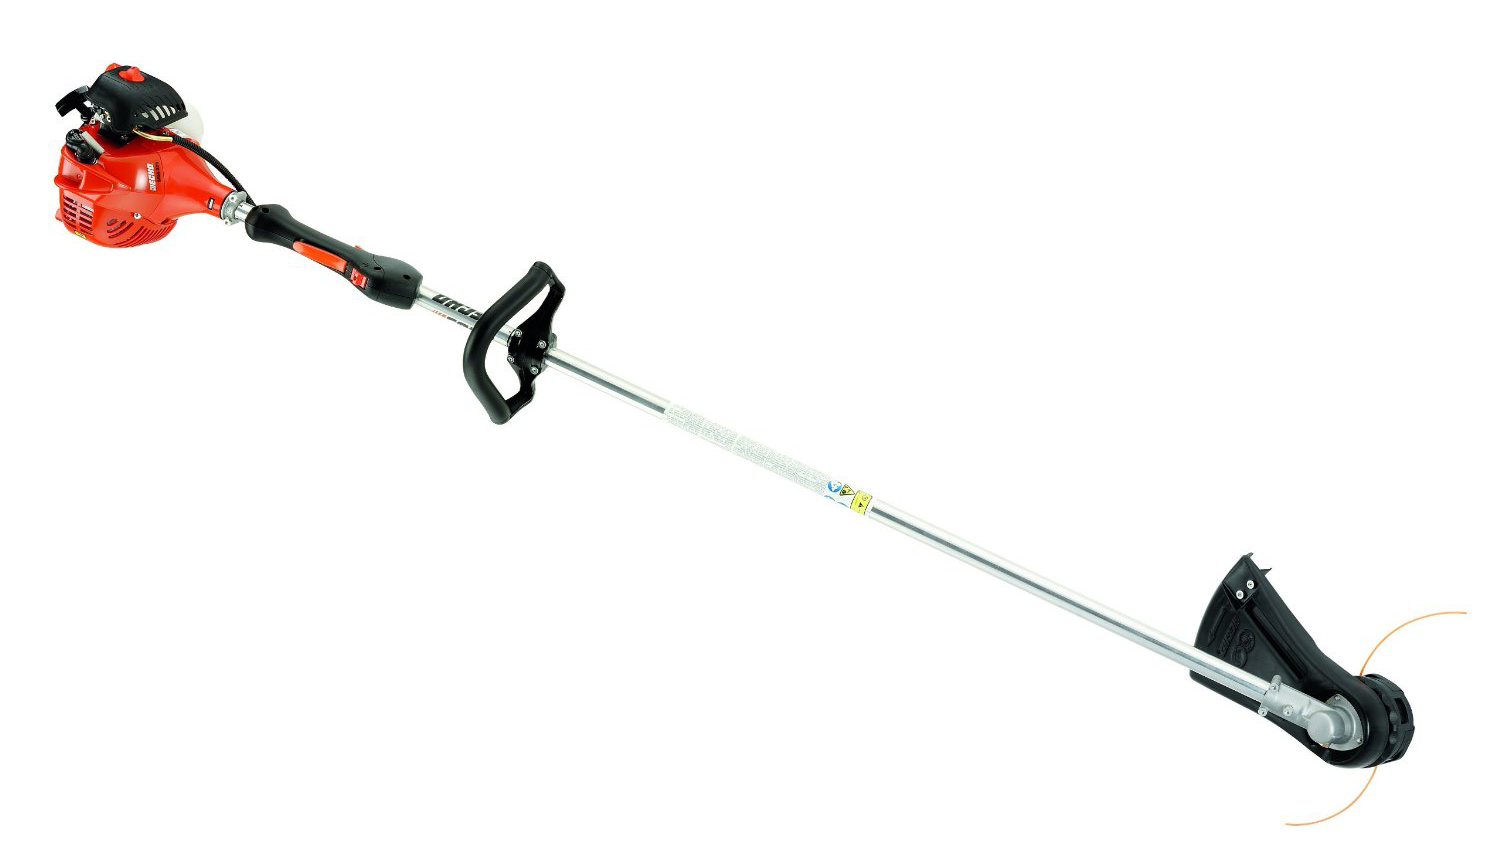 Gardenland Power Equipment   Product   Echo Srm 225 Line Trimmer